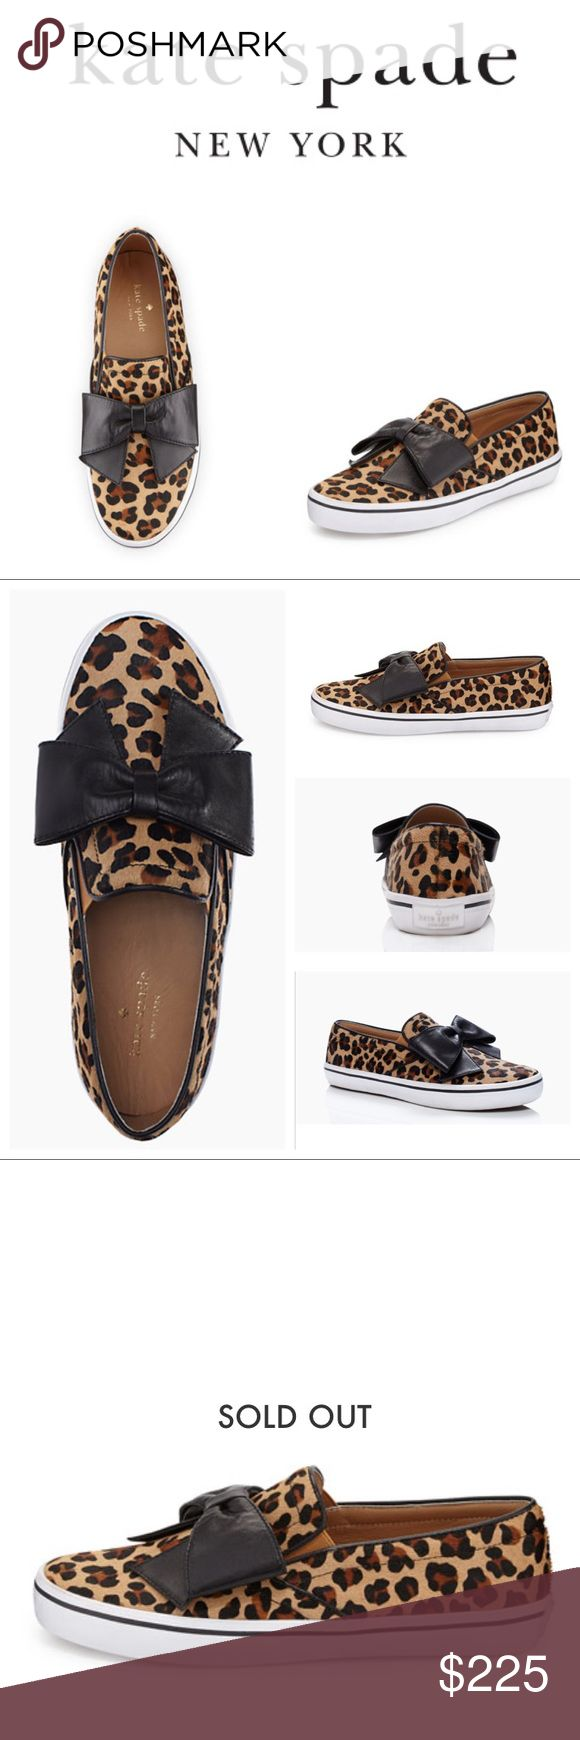 ‼️NEW LIST FLASH SALE♠️kate spade leopard slip on ‼️NEW LIST FLASH SALE today only - after price will remain at $225‼️ - SOLD OUT on katespade.com - Brand new, perfect condition. ship with box if willing to pay more for extra > 5lb shipping fee - Leopard-print calf hair gives this kate spade new york slip-on a fun, textured lift. Oversized napa leather bow at vamp. Notched vamp with elastic insets. Leather lining and insole. kate spade Shoes